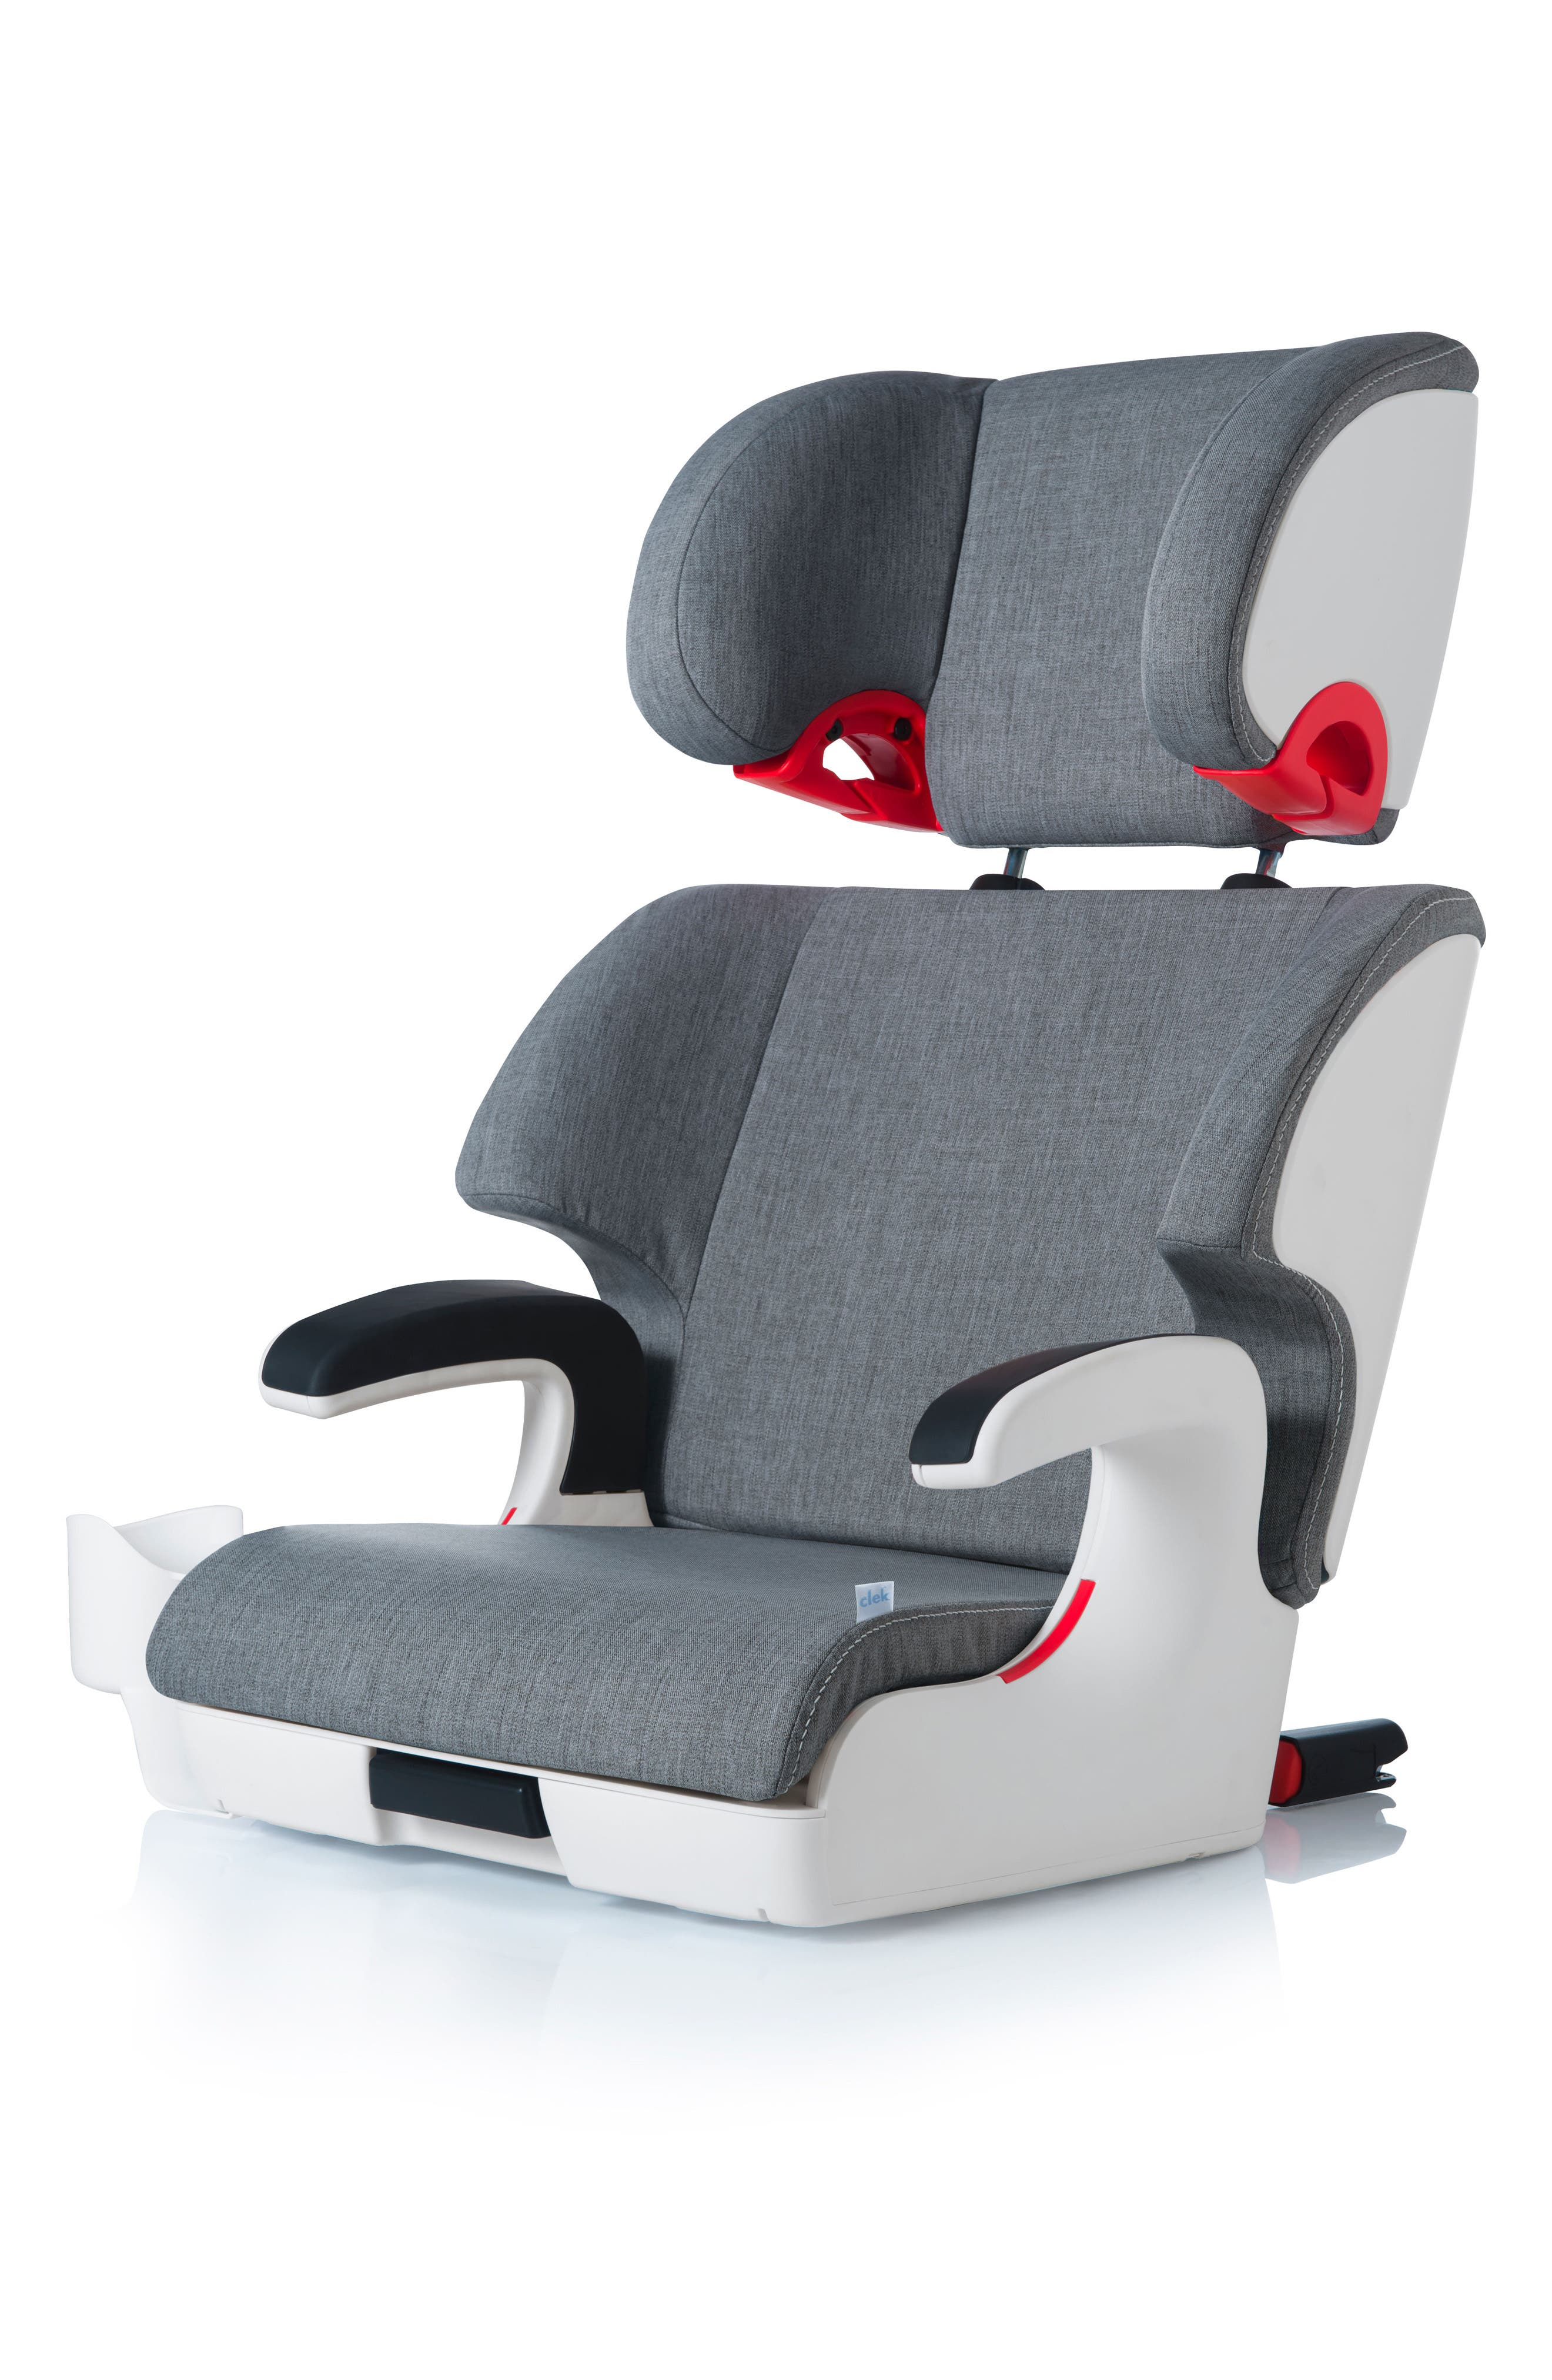 Main Image - Clek Oobr Convertible Full Back/Backless Booster Seat